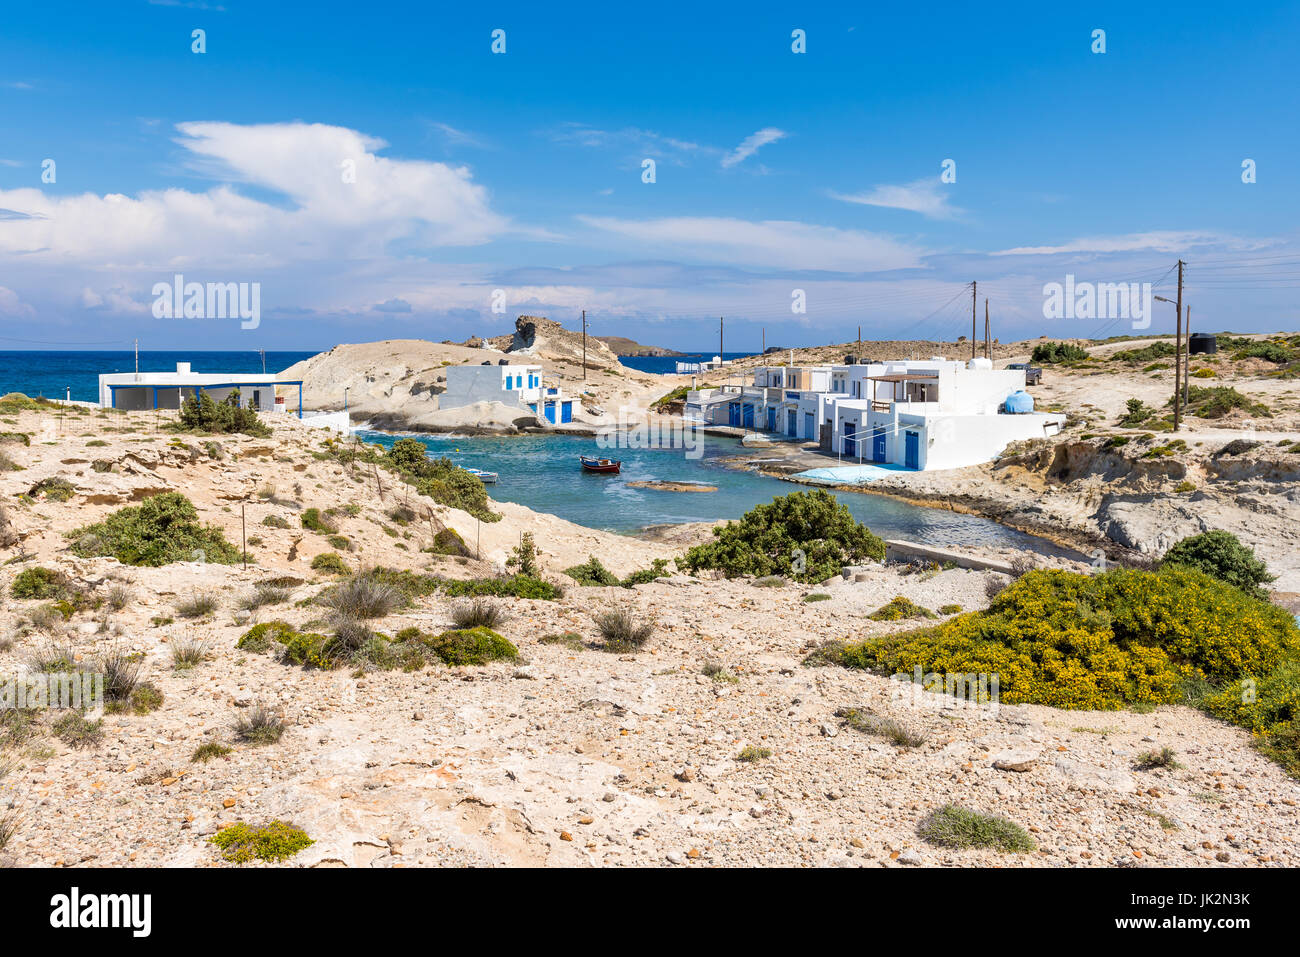 Small and quiet seaside settlement of Agios Konstantinos on island of Milos. Cyclades, Greece. - Stock Image